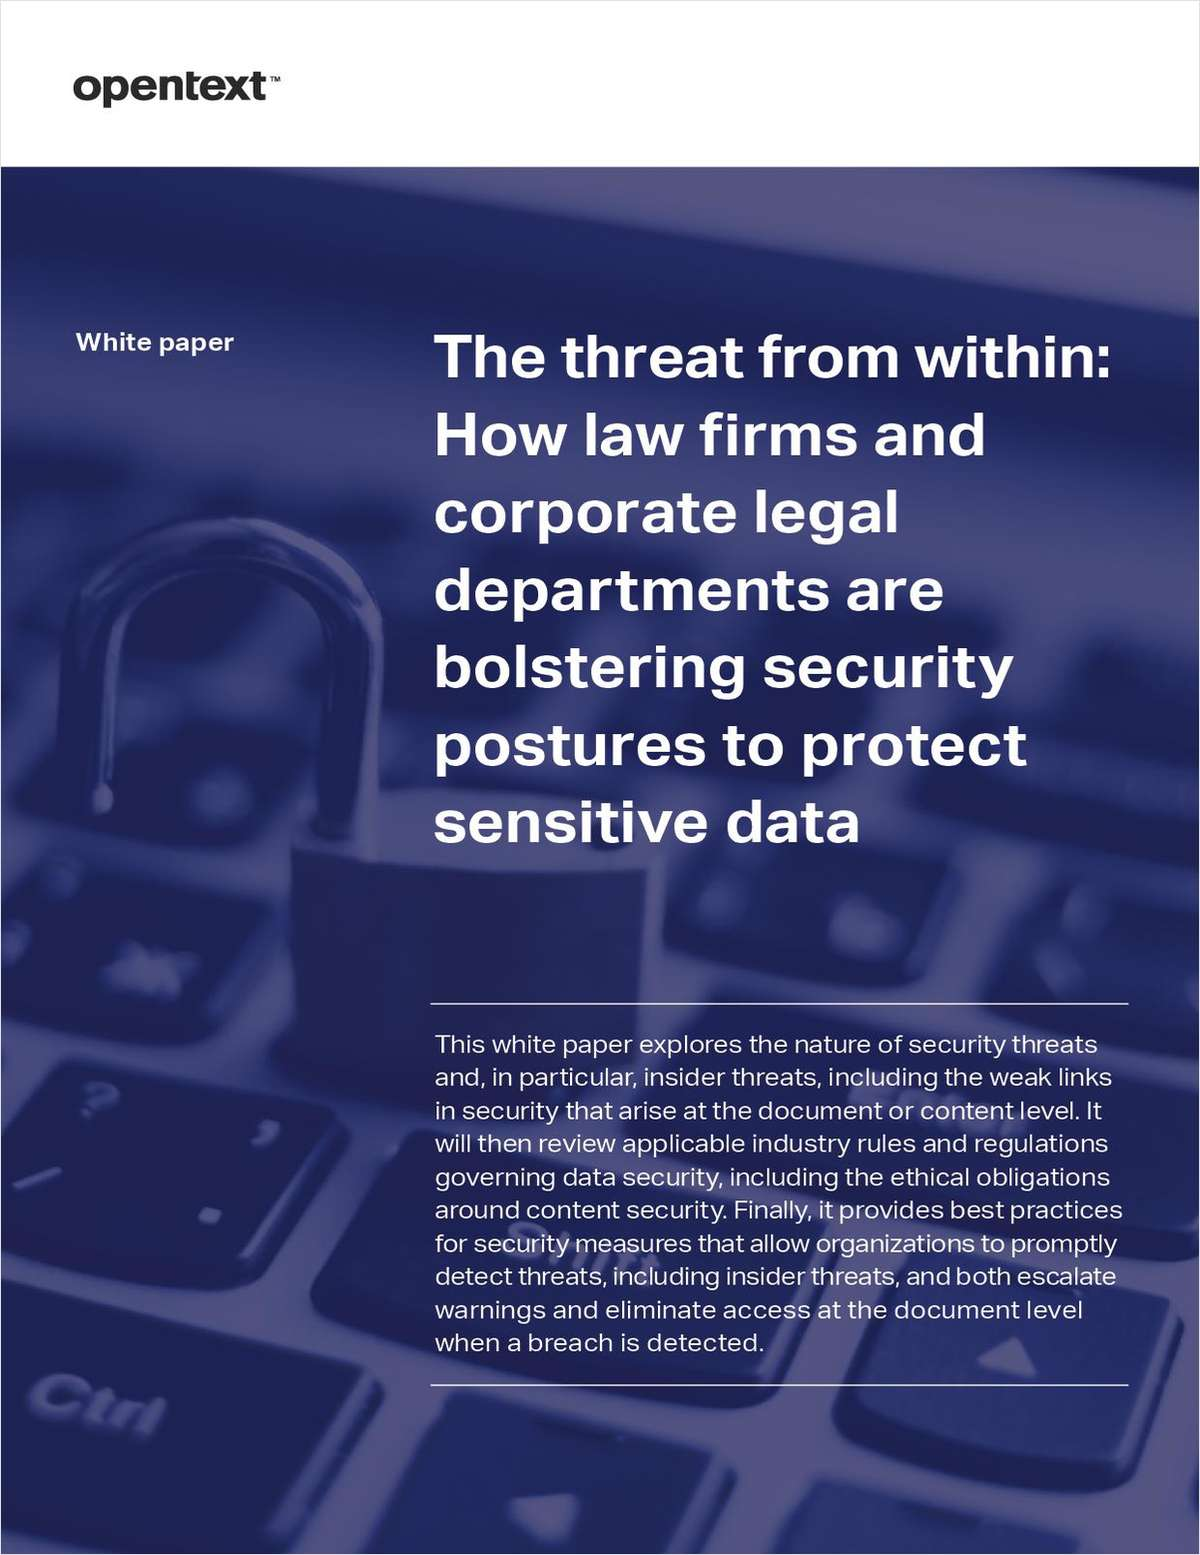 The Threat from Within: How Law Firms Are Bolstering Security Postures to Protect Sensitive Data